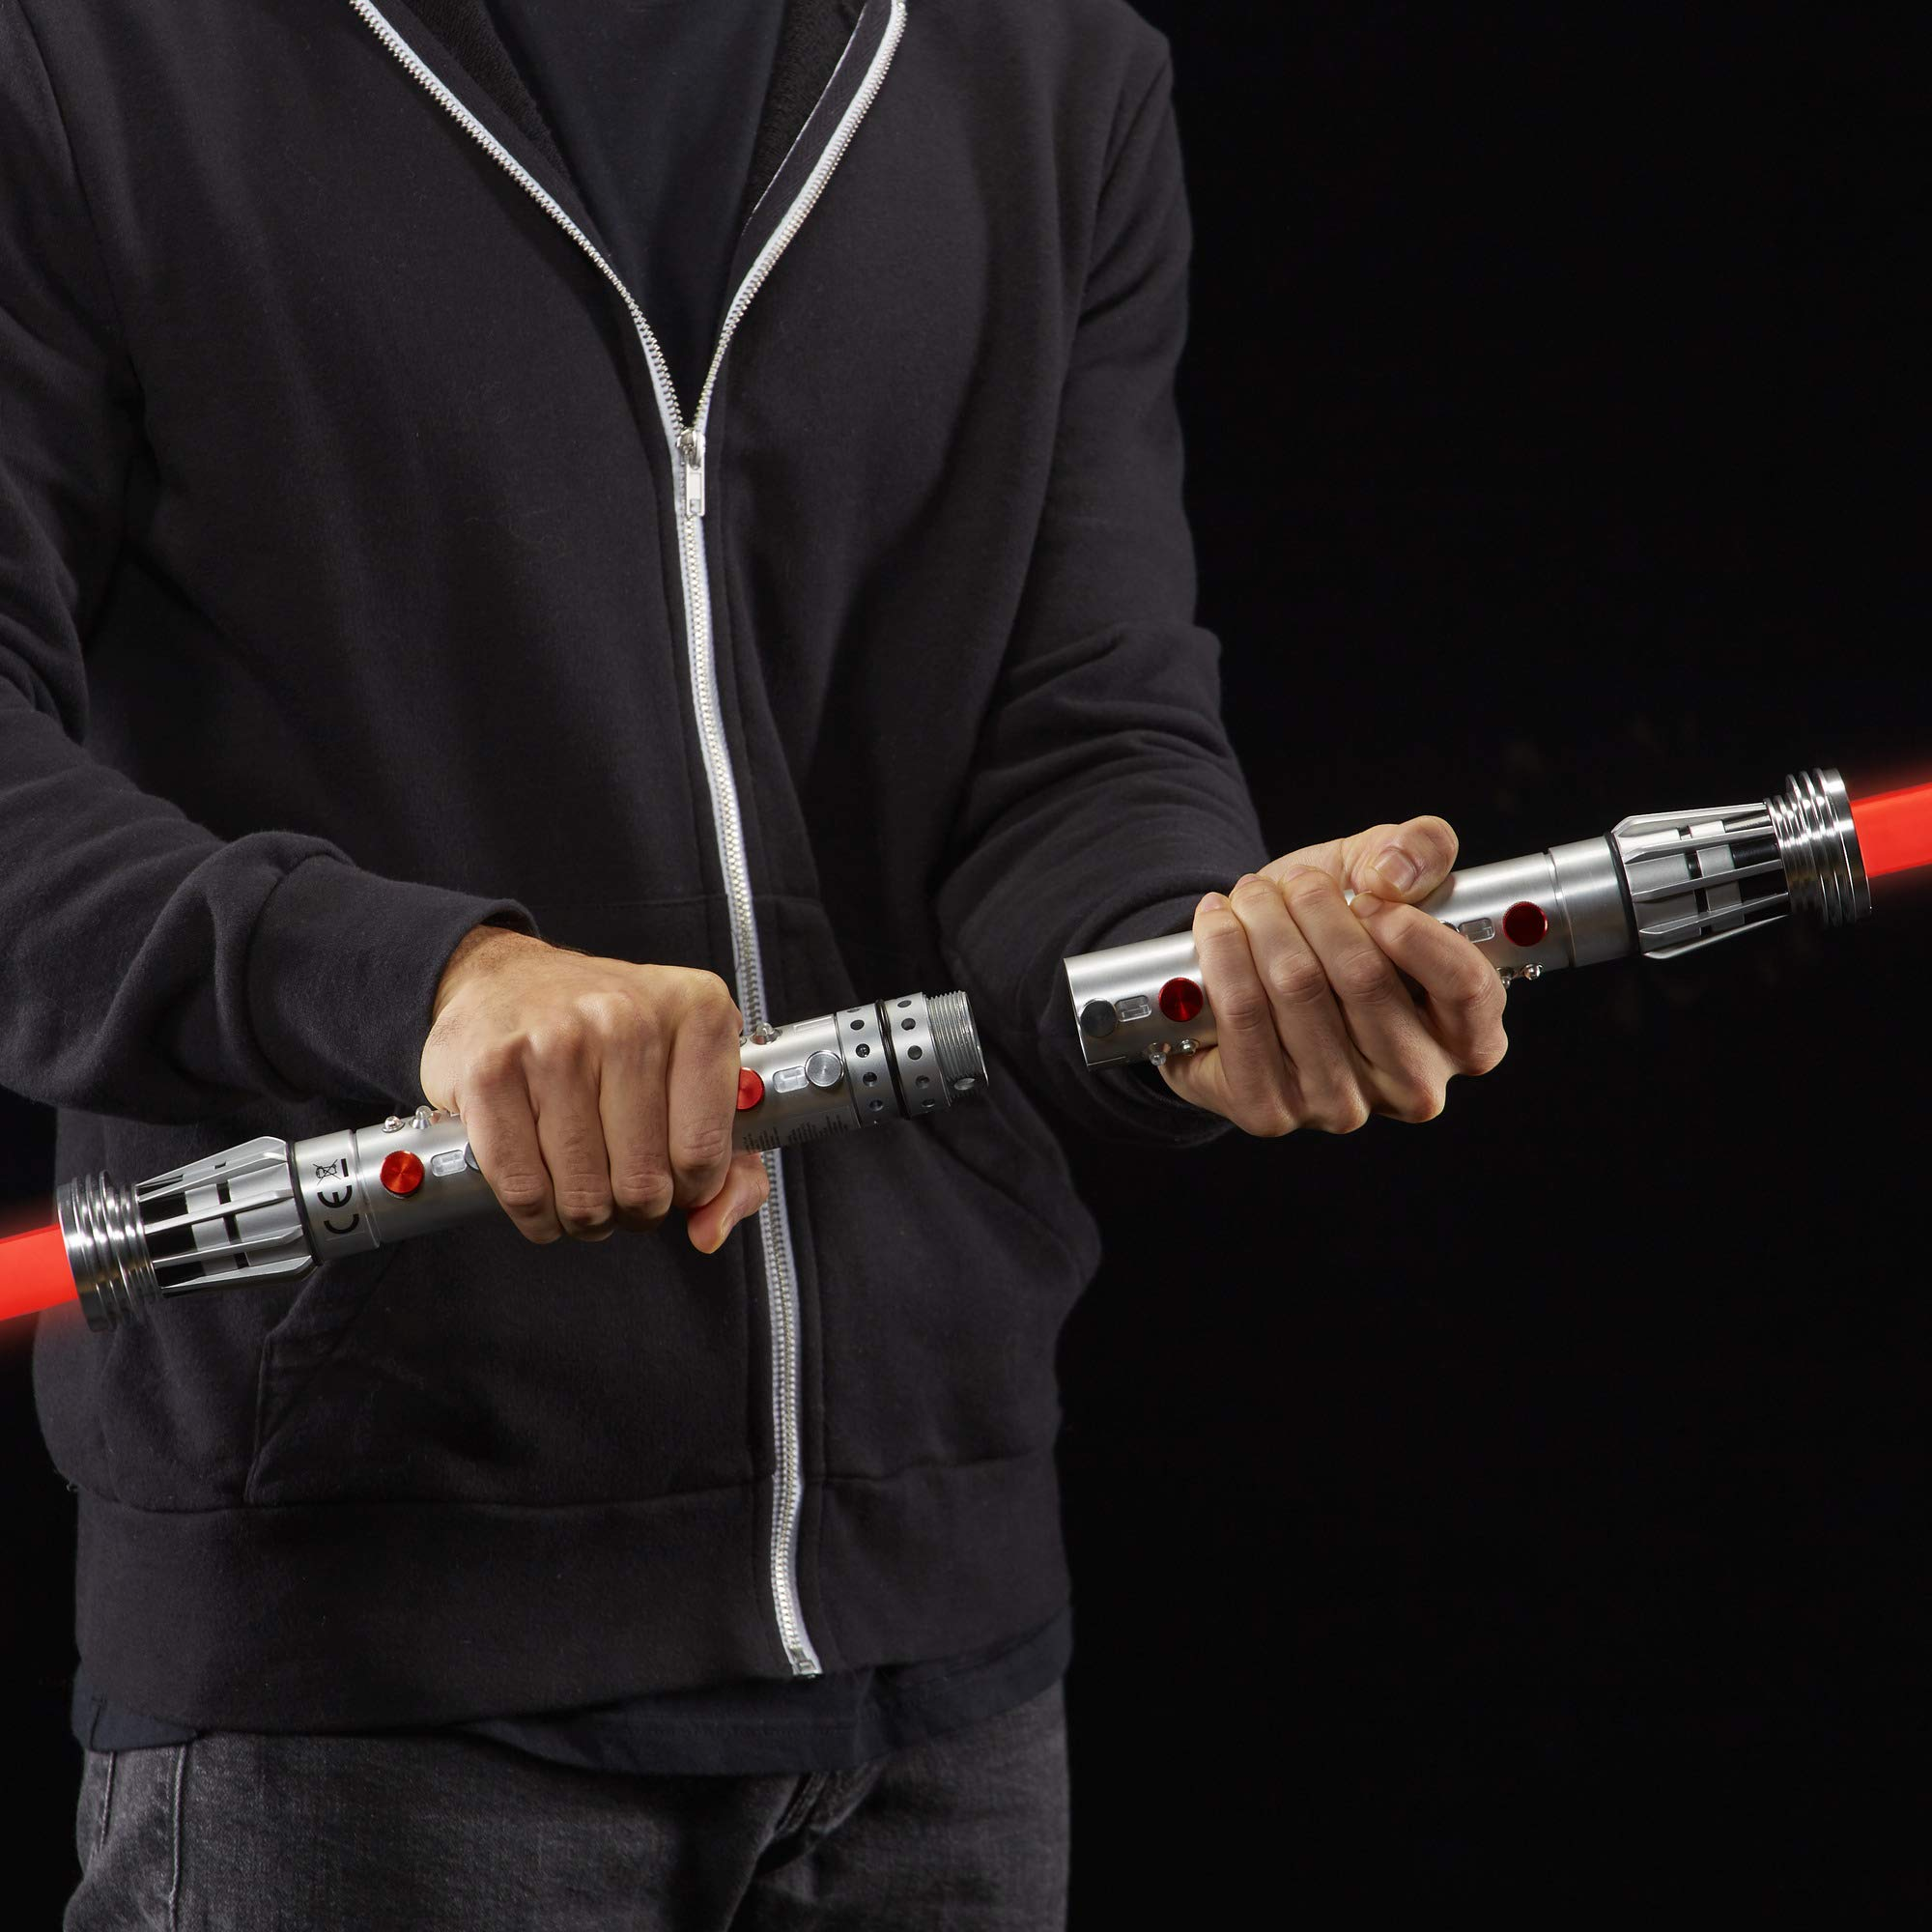 Star Wars The Black Series Darth Maul Ep1 Force FX Lightsaber Toy by Star Wars (Image #6)